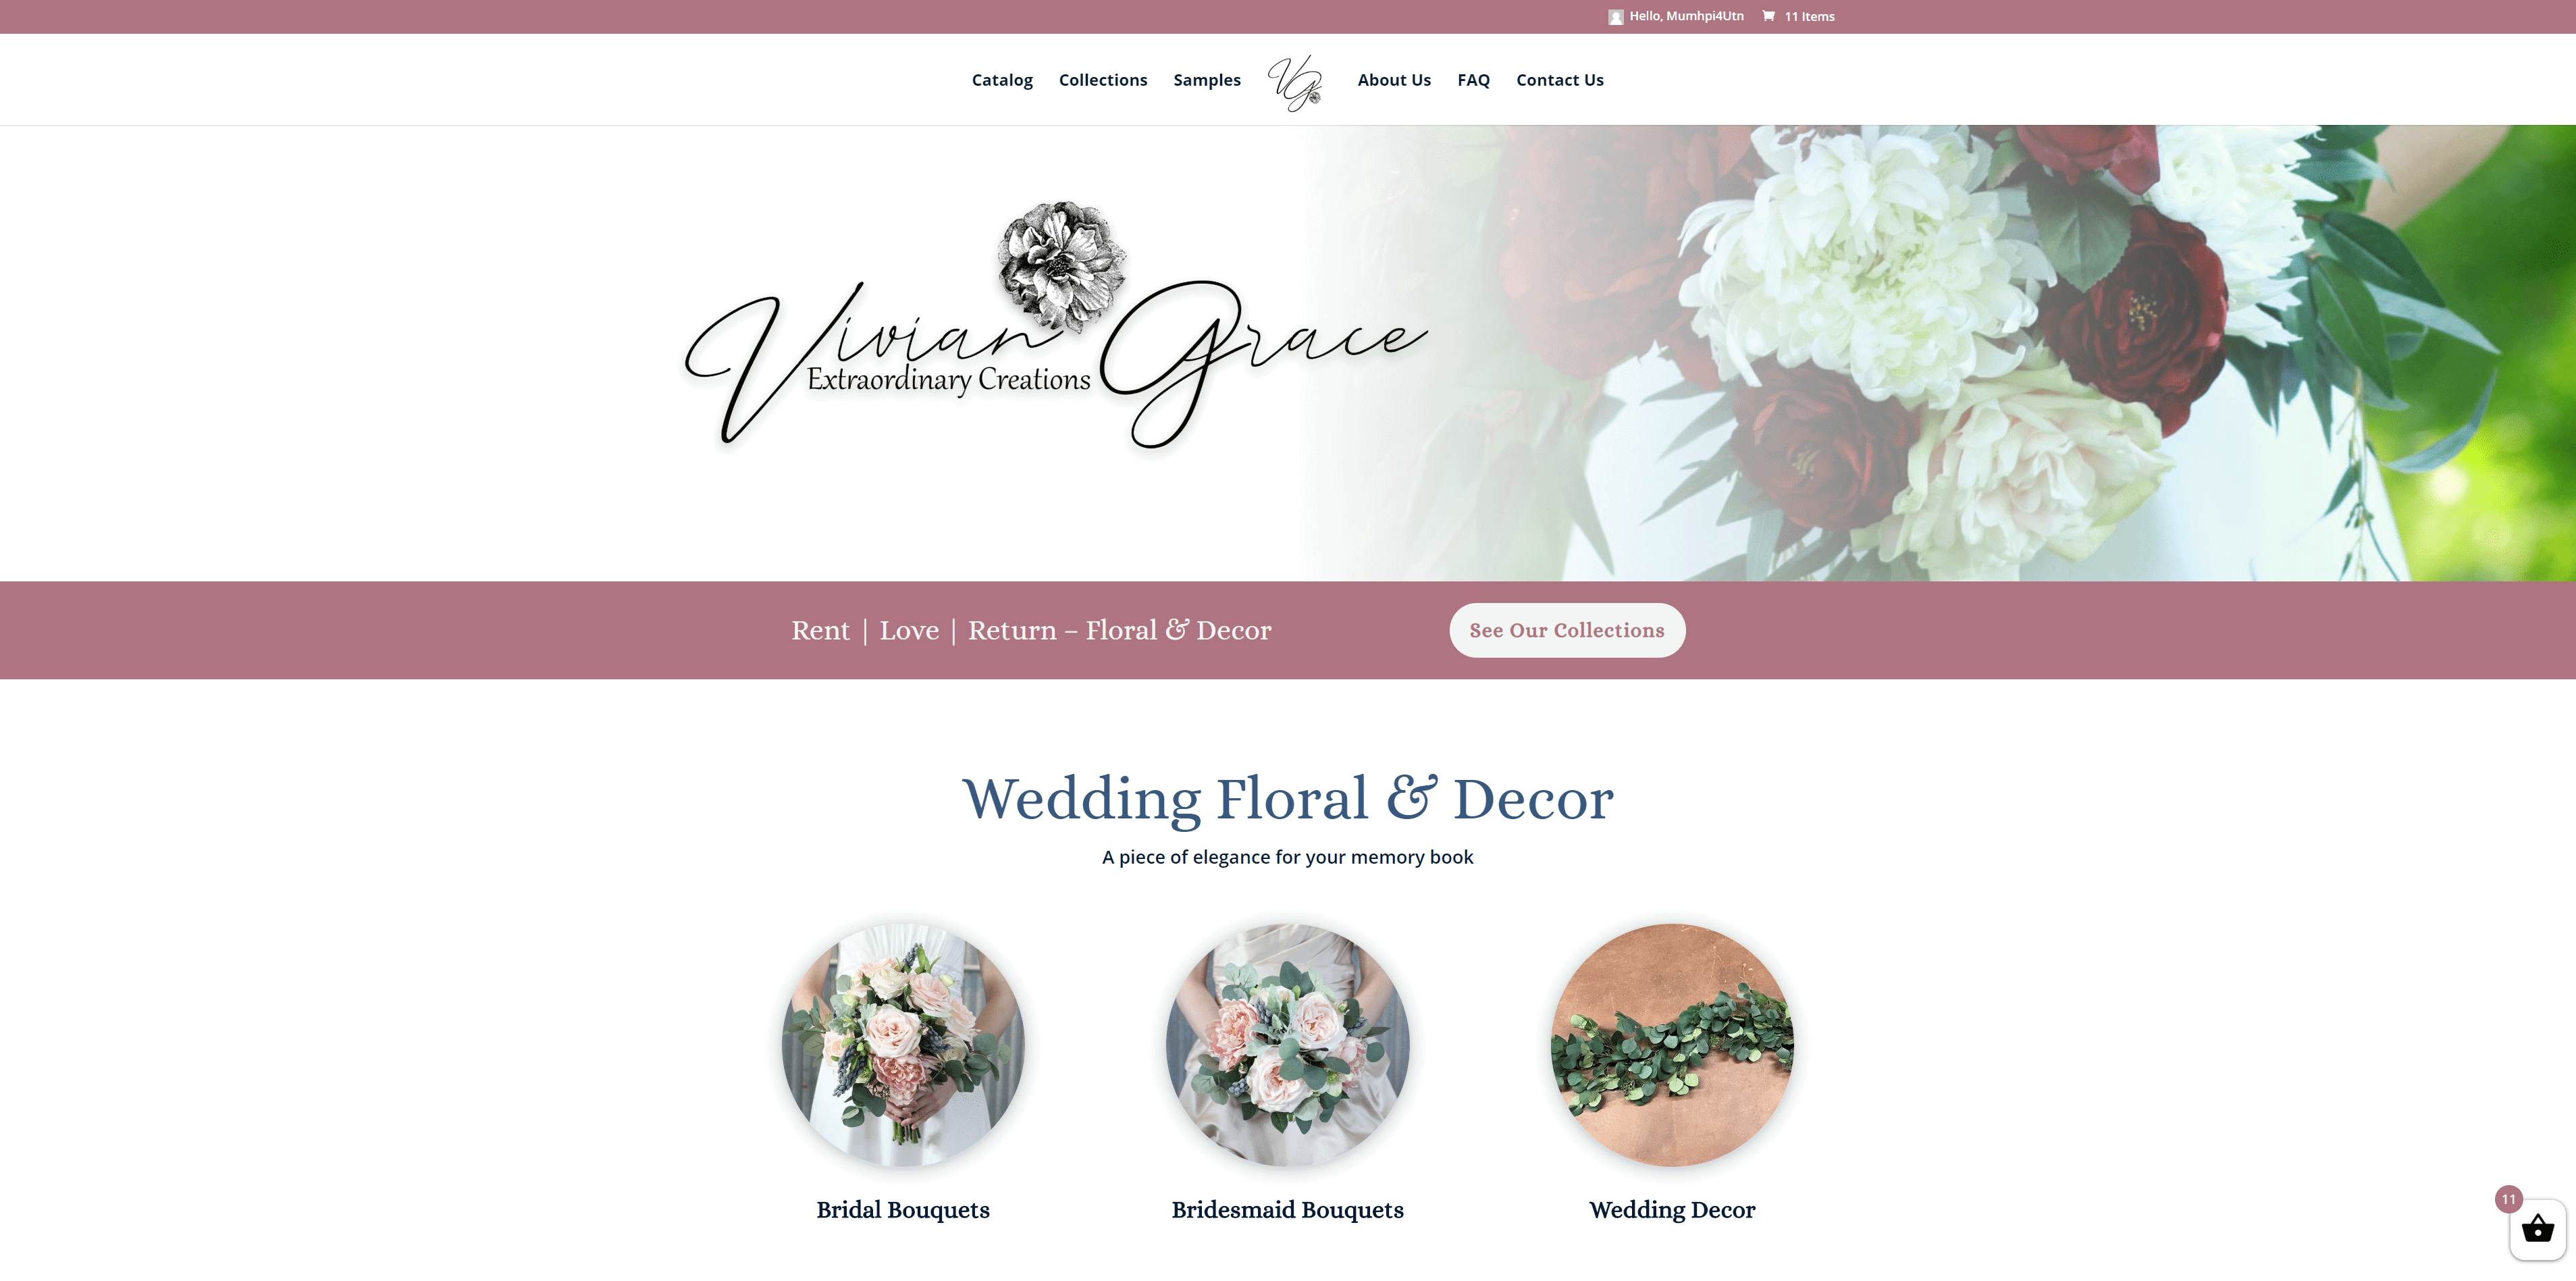 vivian grace website design screenshot